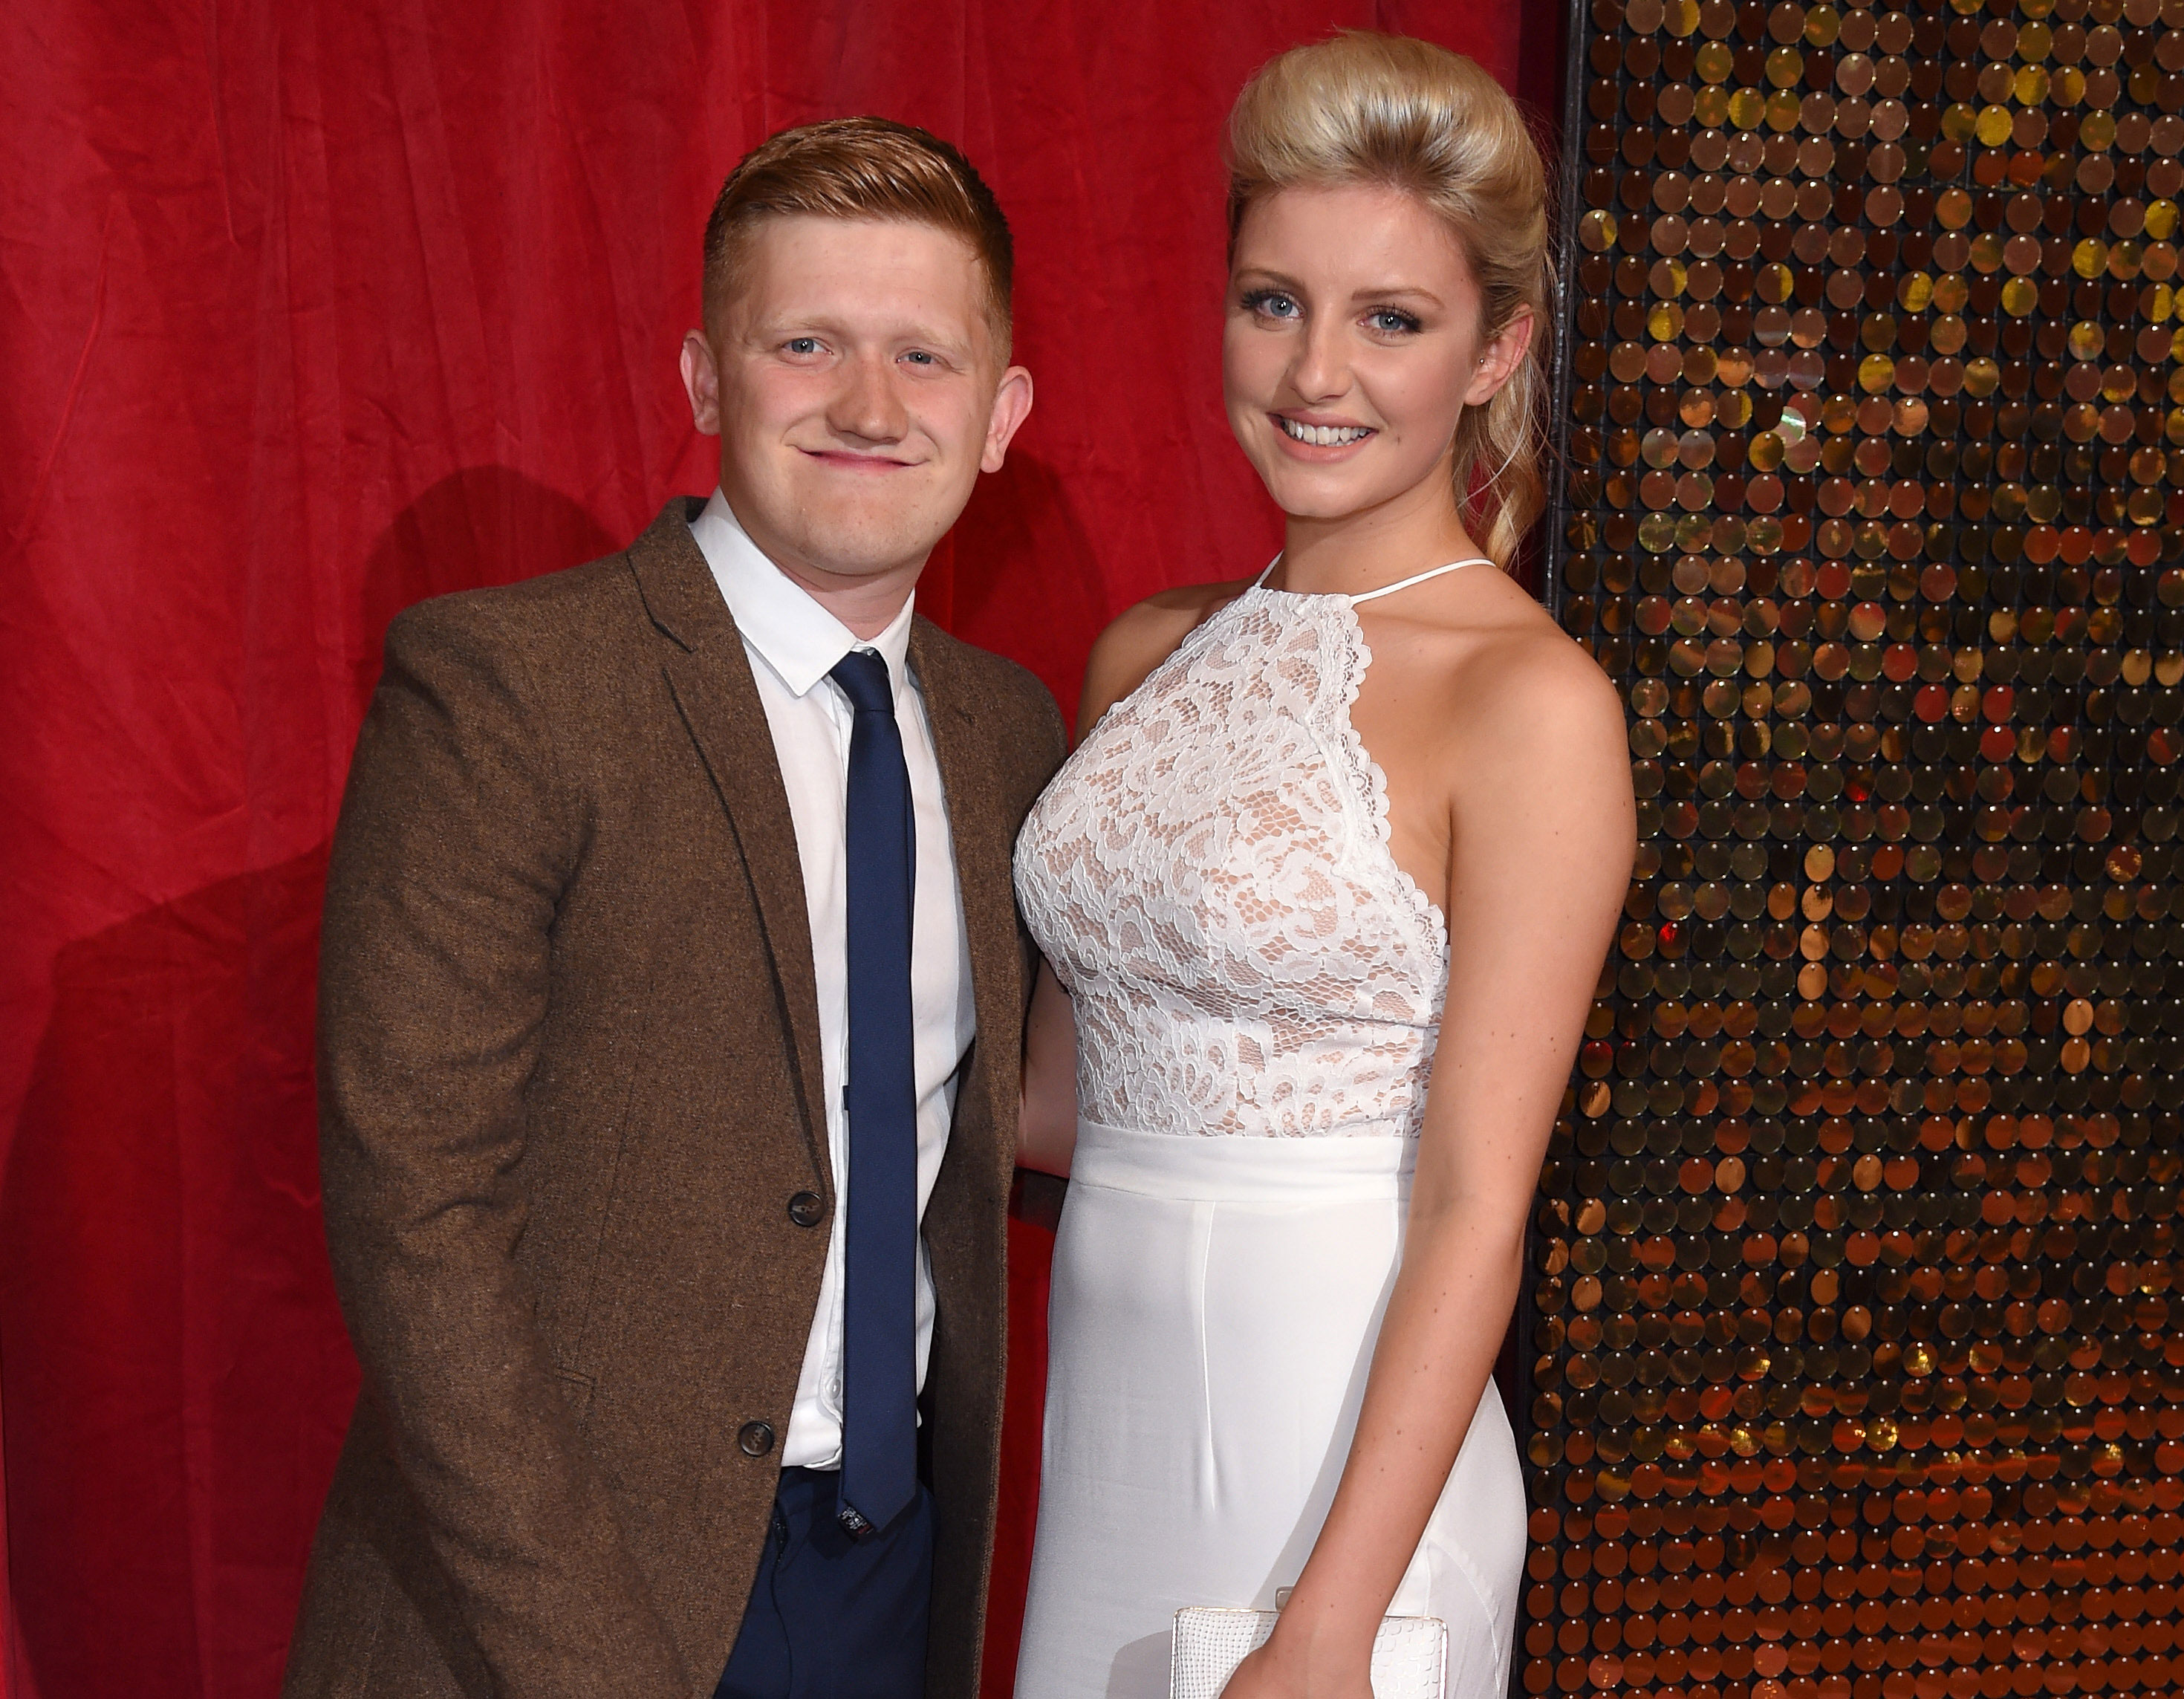 Coronation Street star Sam Aston and his wife Briony are expecting a baby